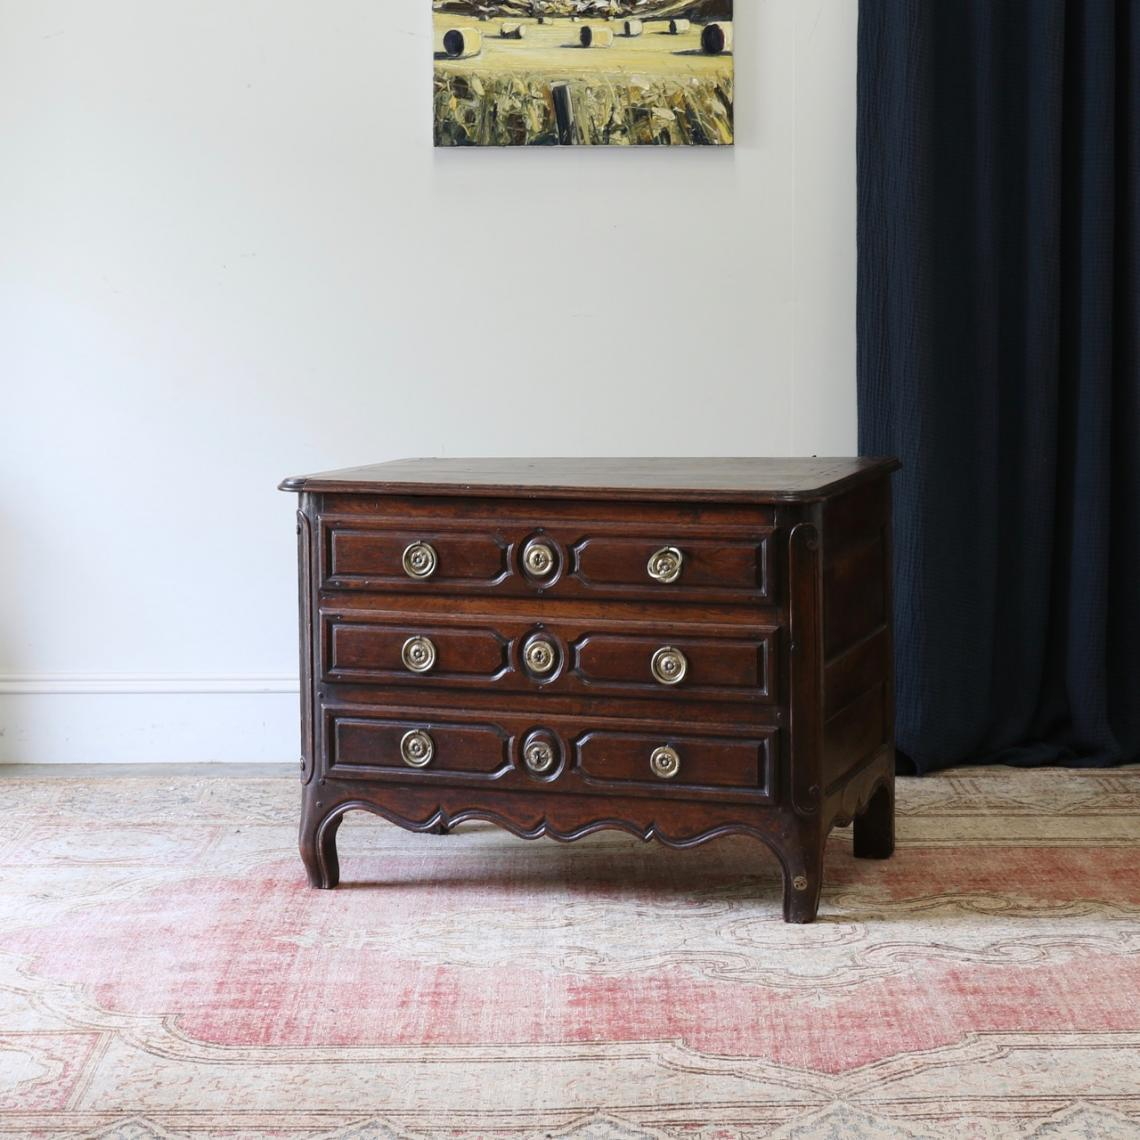 116-76 - Chest of Drawers /Coffer